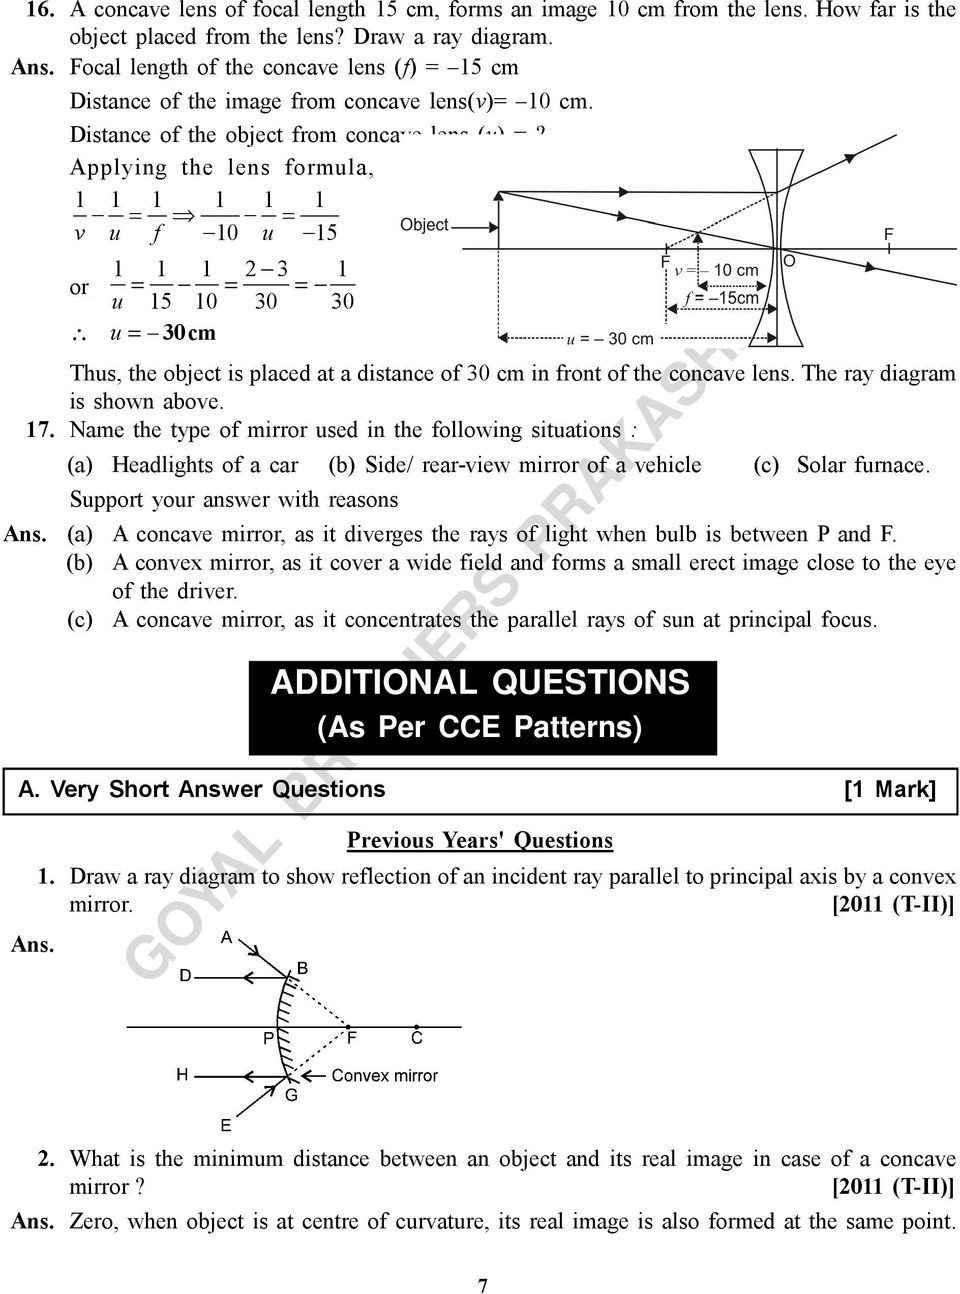 LIGHT REFLECTION AND REFRACTION - PDF